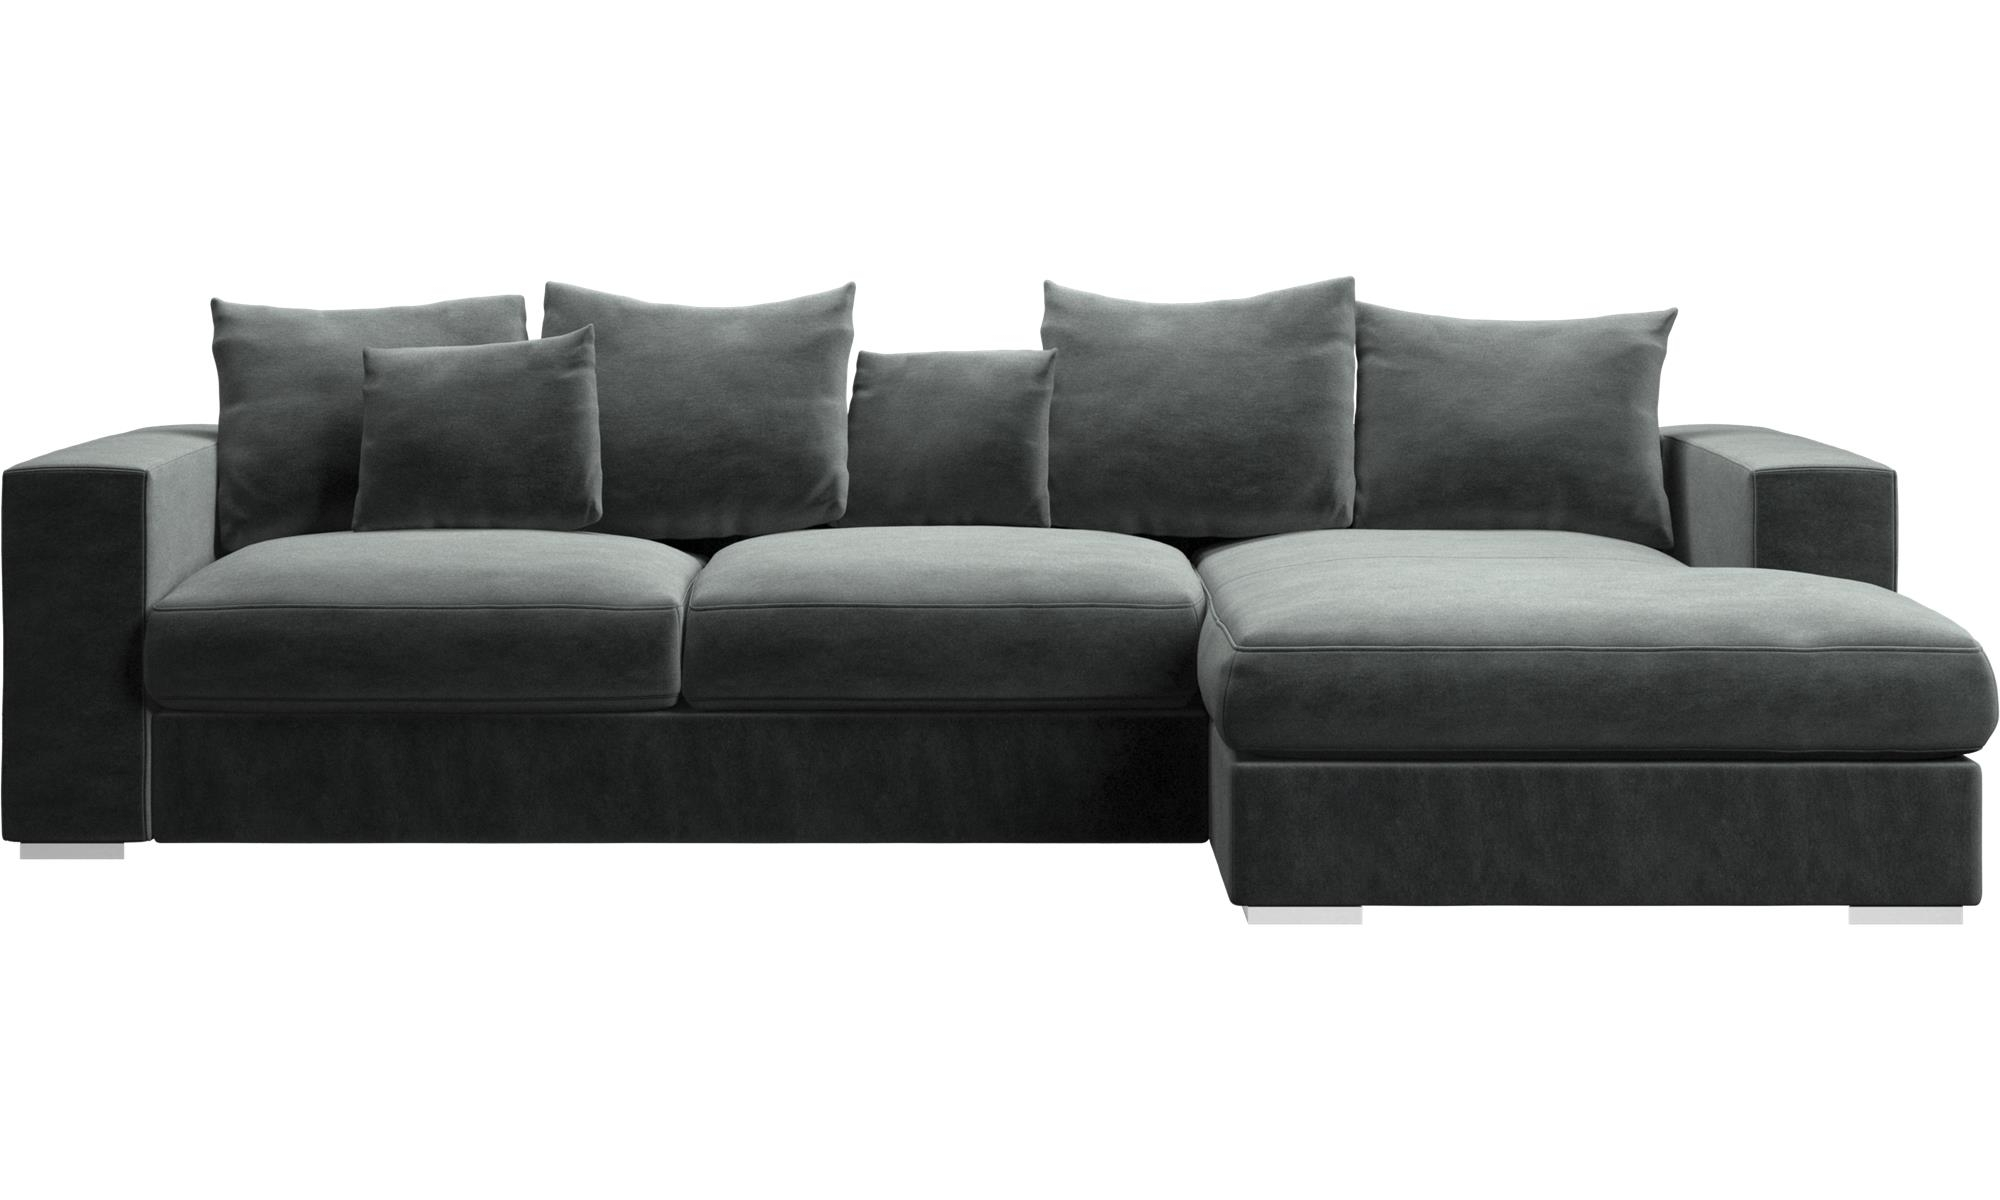 2017 Chaise Lounge Sofas – Cenova Sofa With Resting Unit – Boconcept Throughout Chaise Lounge Sofas (View 2 of 15)